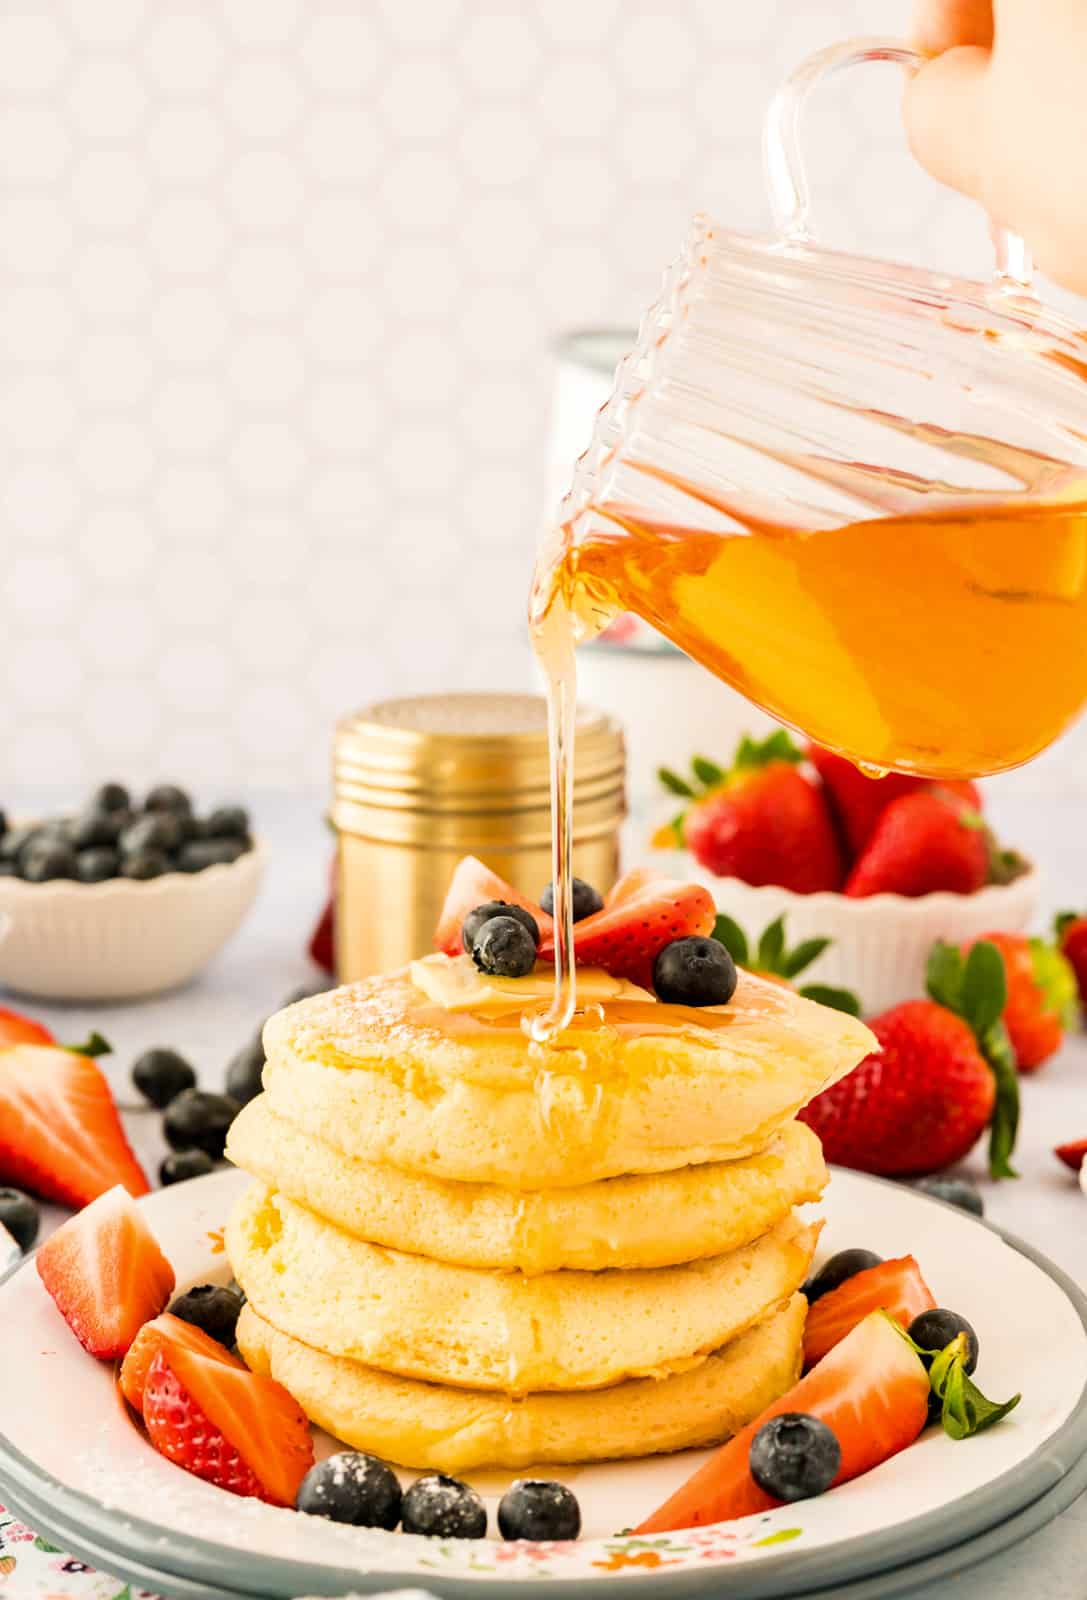 Stacked Pancakes on plate with syrup being poured over top